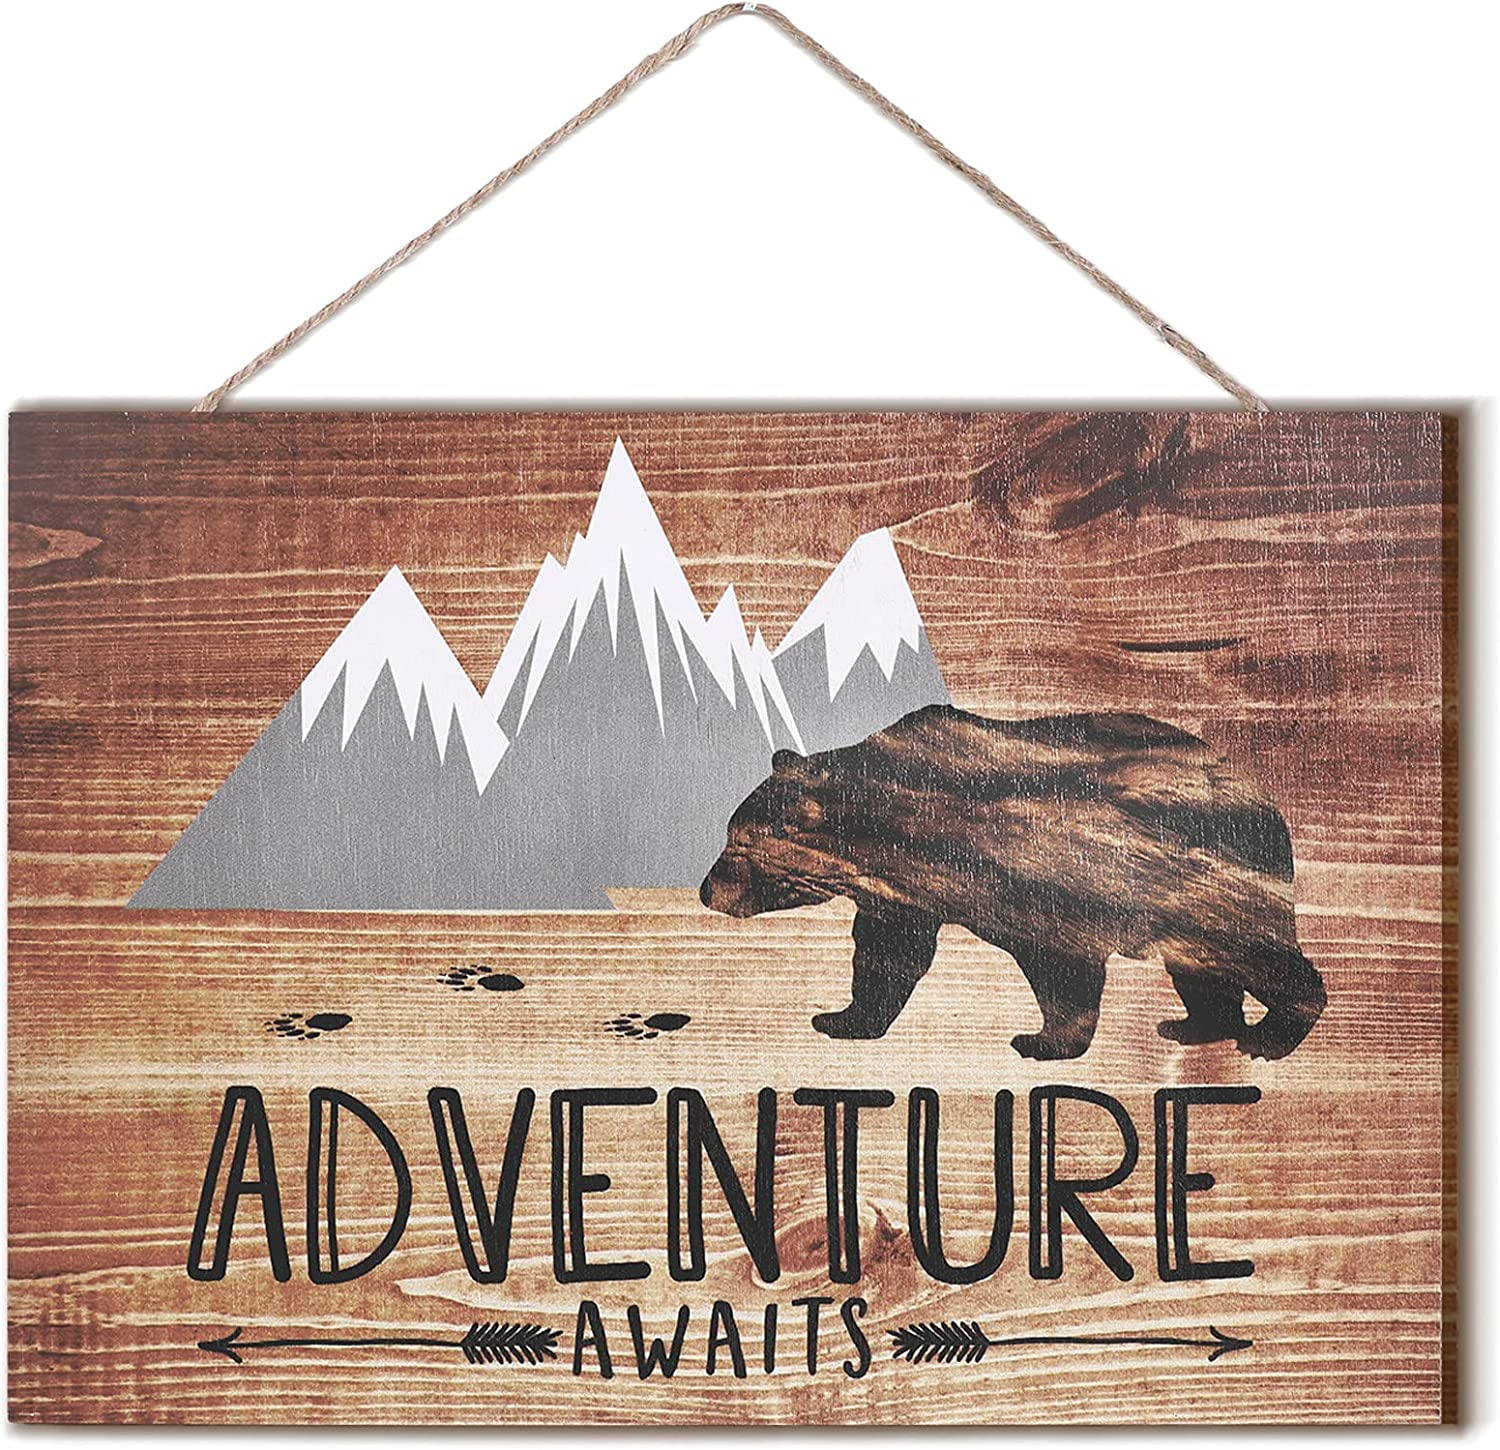 Vintage Adventure Awaits Rustic Wooden Plank Sign with Bear Mountain Shaped Grey and White Decorative Wall Sign Family Decorative Sign Inspirational Motto for Home Kitchen Living Room,10 x 7 Inch